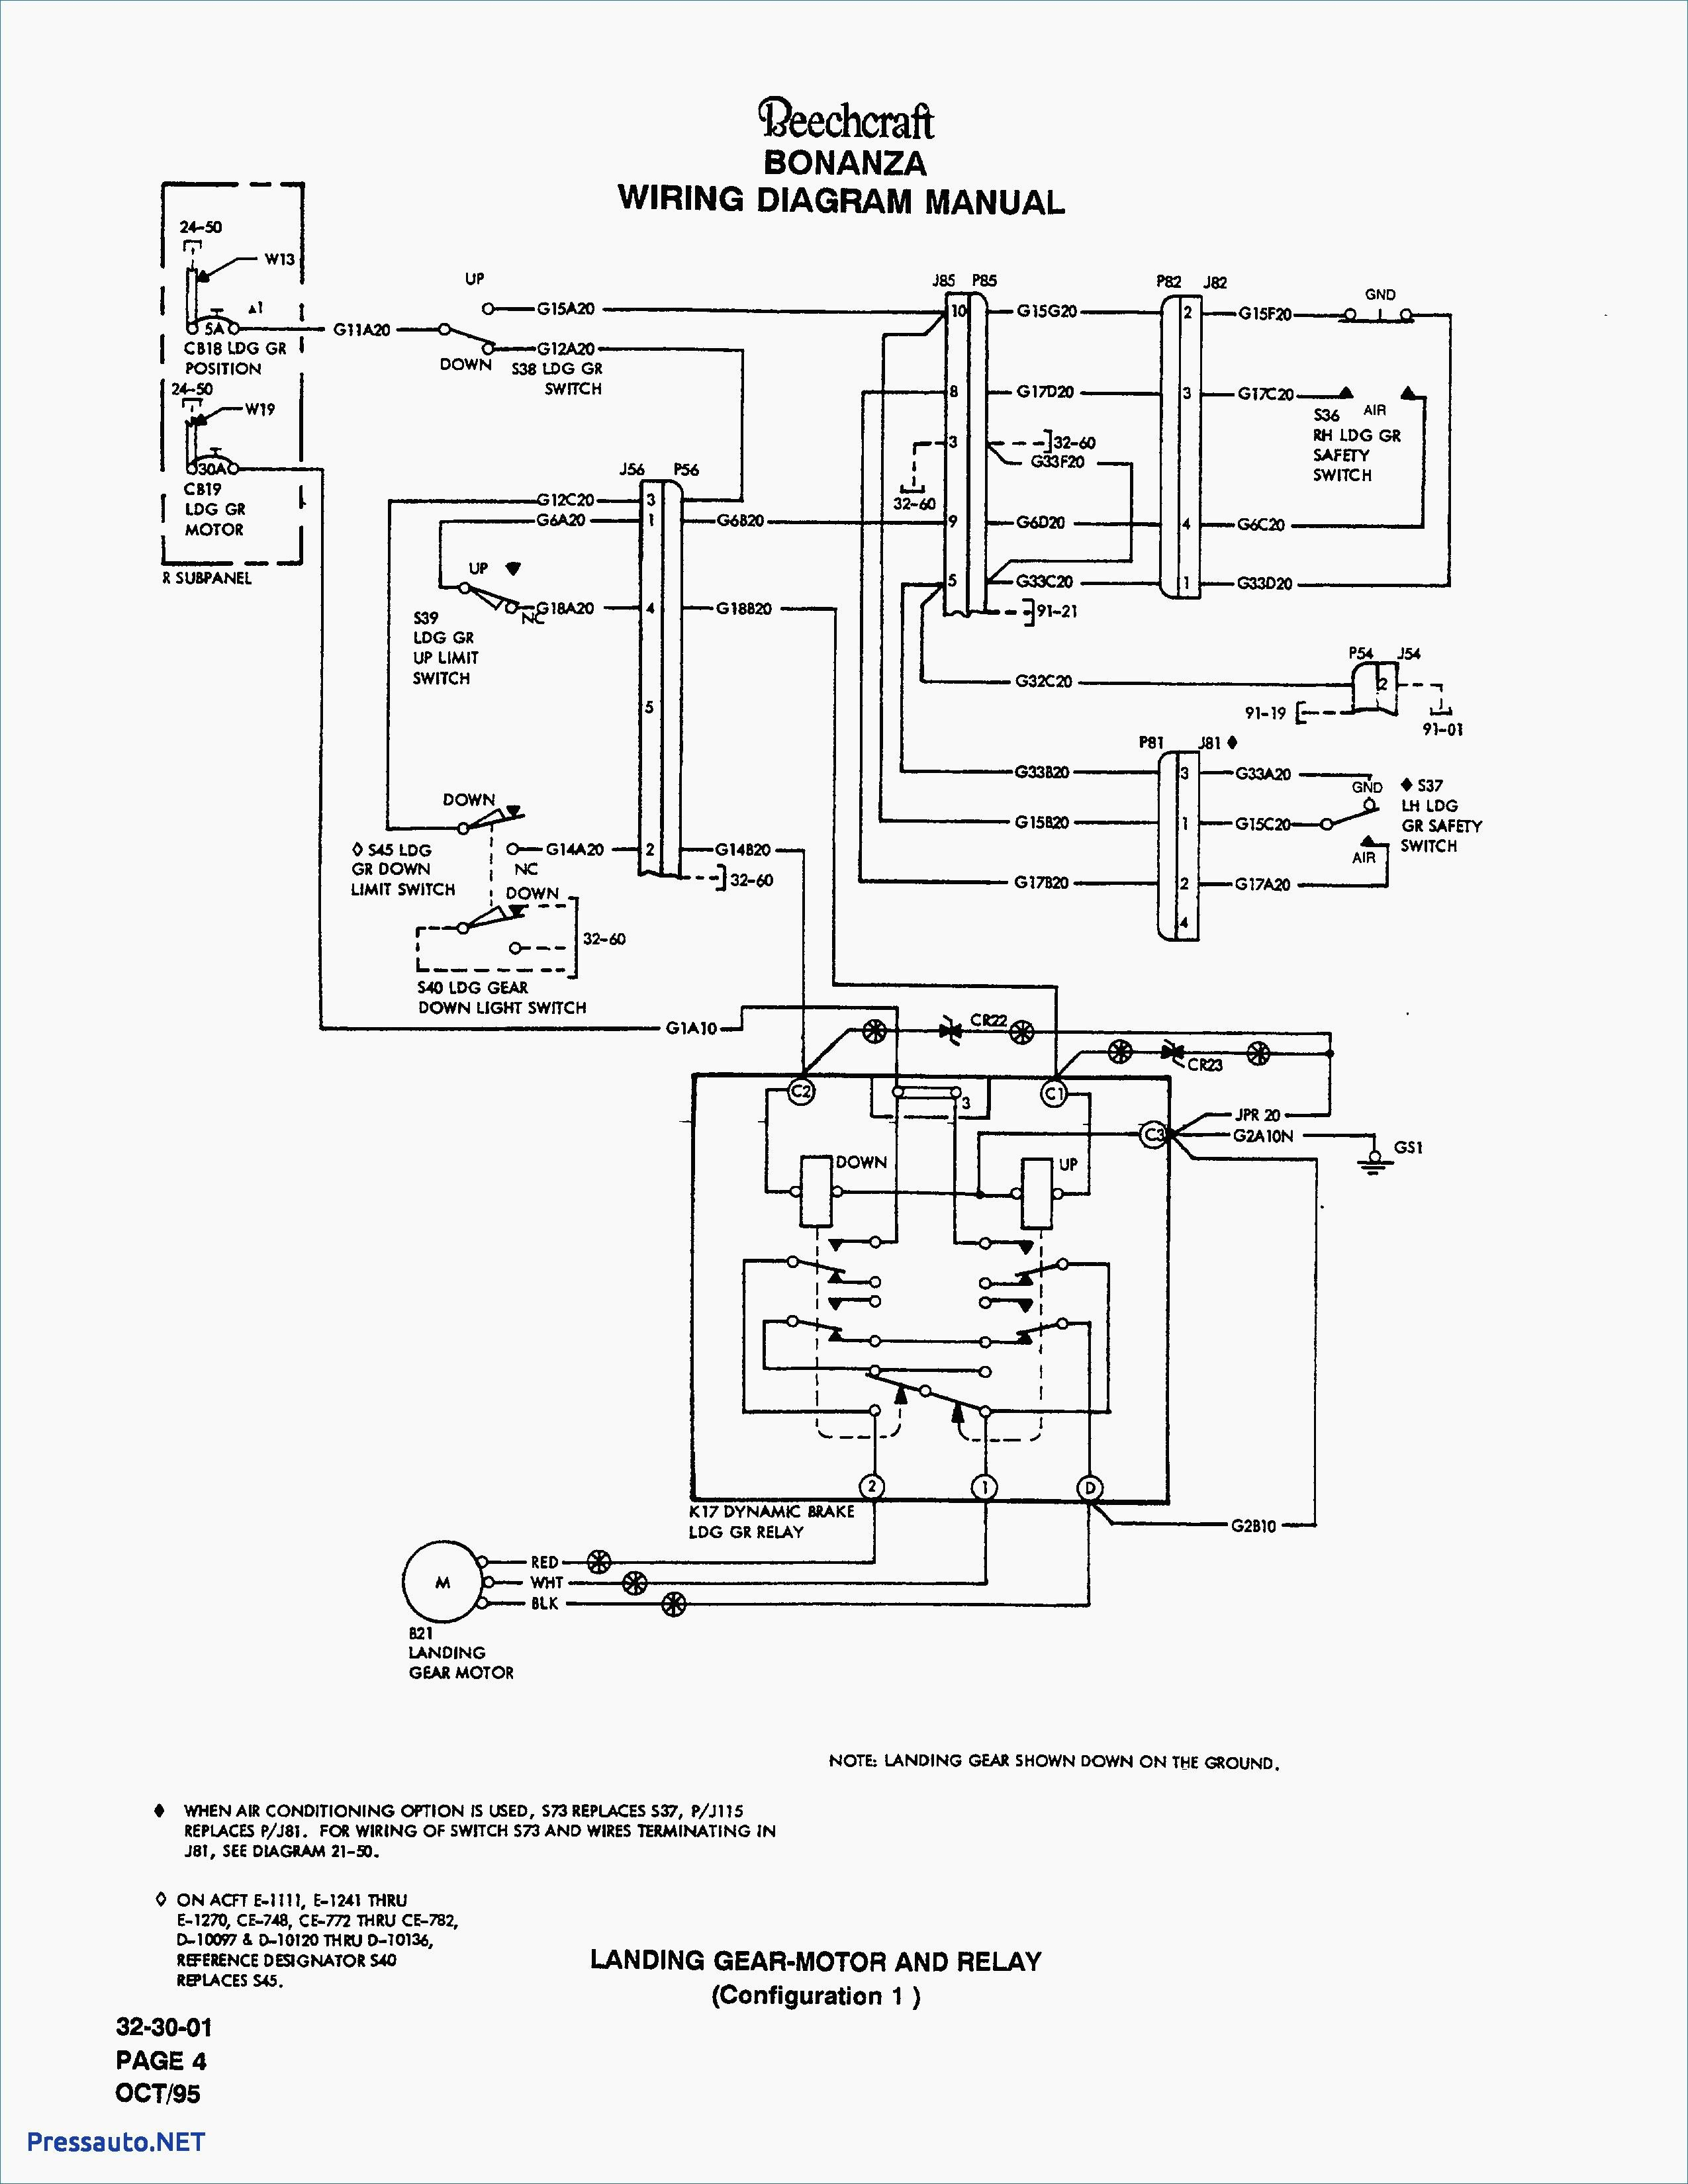 New Contactor Coil Wiring Diagram #diagram #